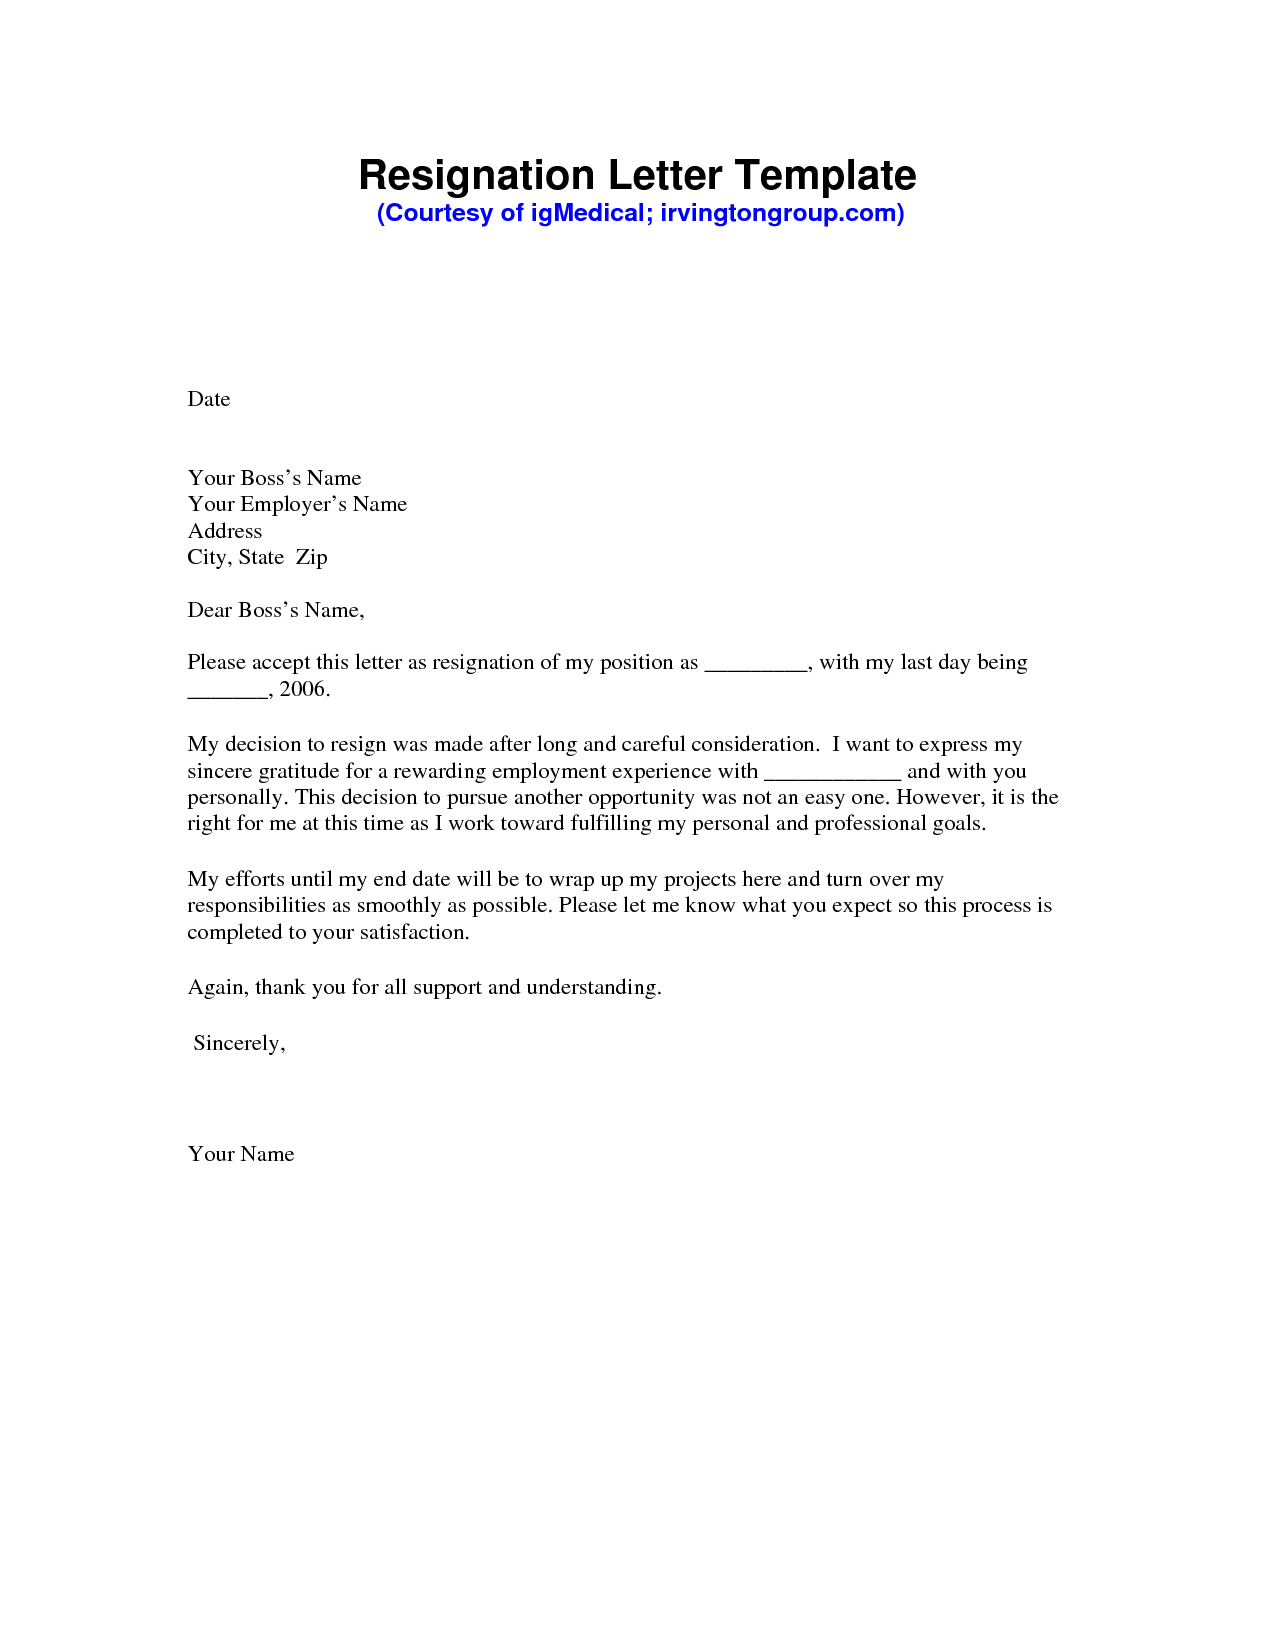 Resignation letter sample pdf resignation letter pinterest resignation letter sample pdf thecheapjerseys Image collections